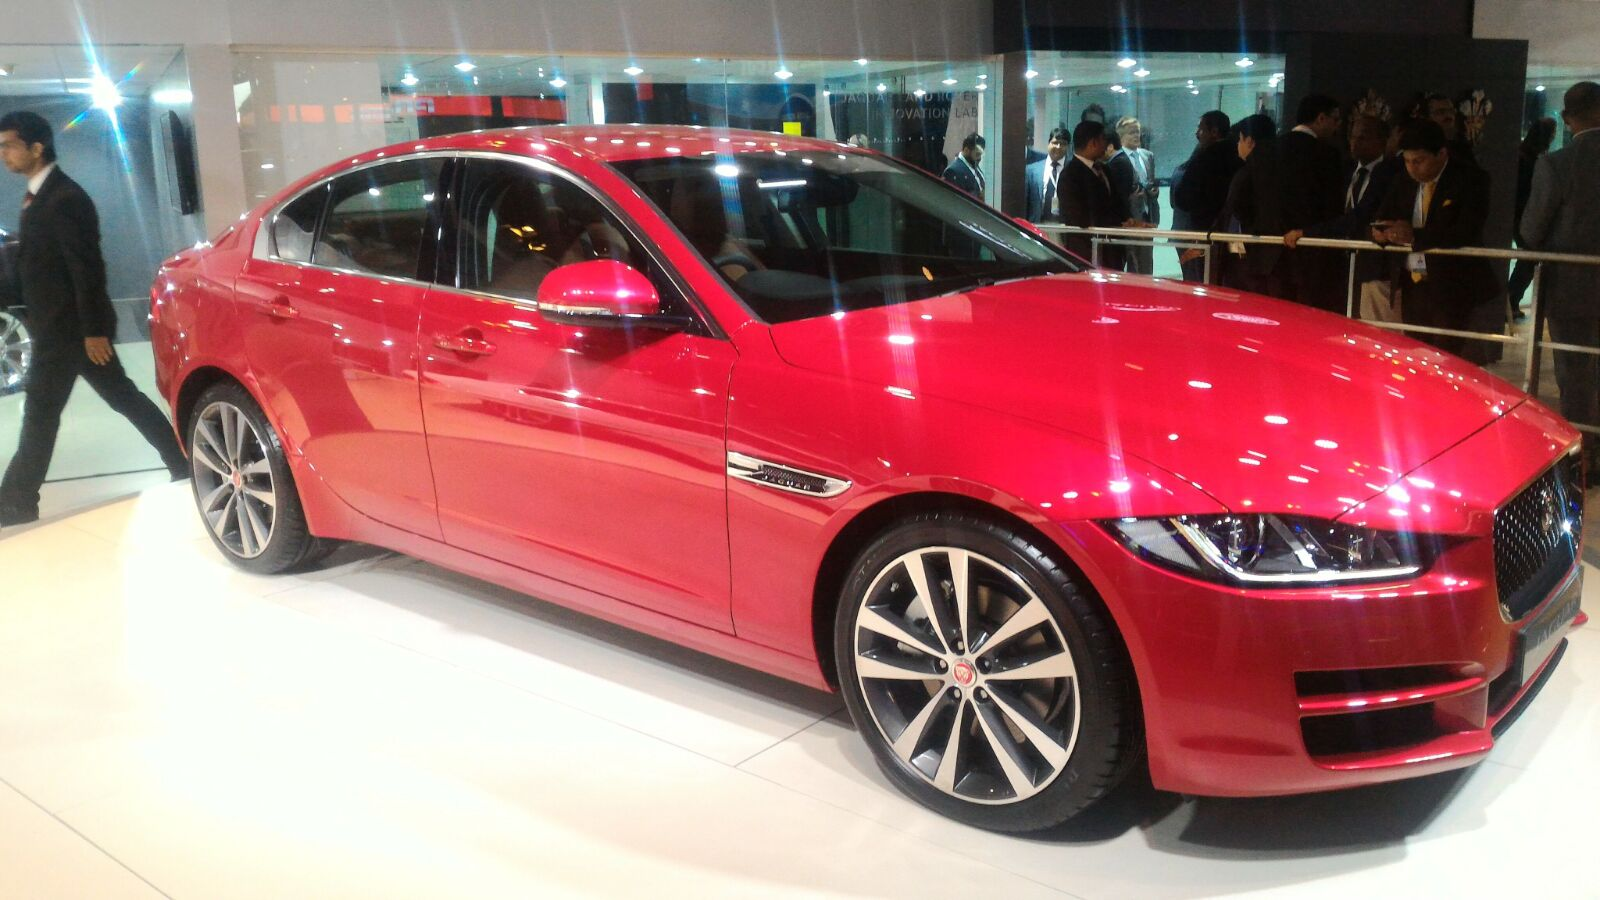 Jaguar Xe Launched In India At Inr 39 9 Lacs